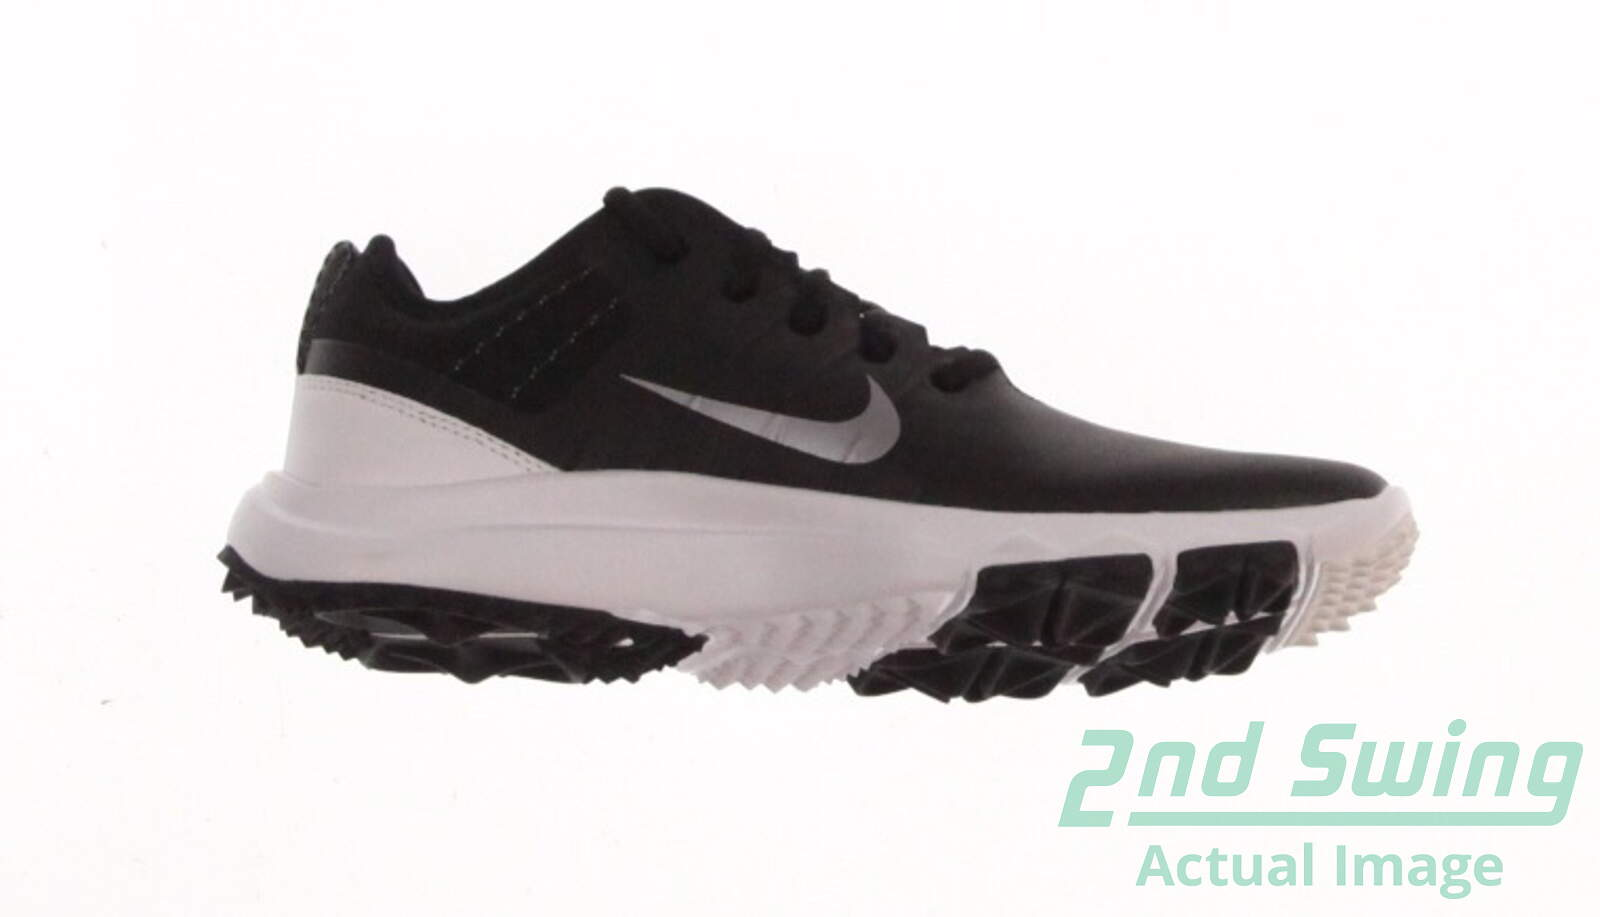 e0aede9b90d0 New Womens Golf Shoe Nike FI Impact 2 9.5 Black White MSRP  170 776093 002  - Golf Footwear